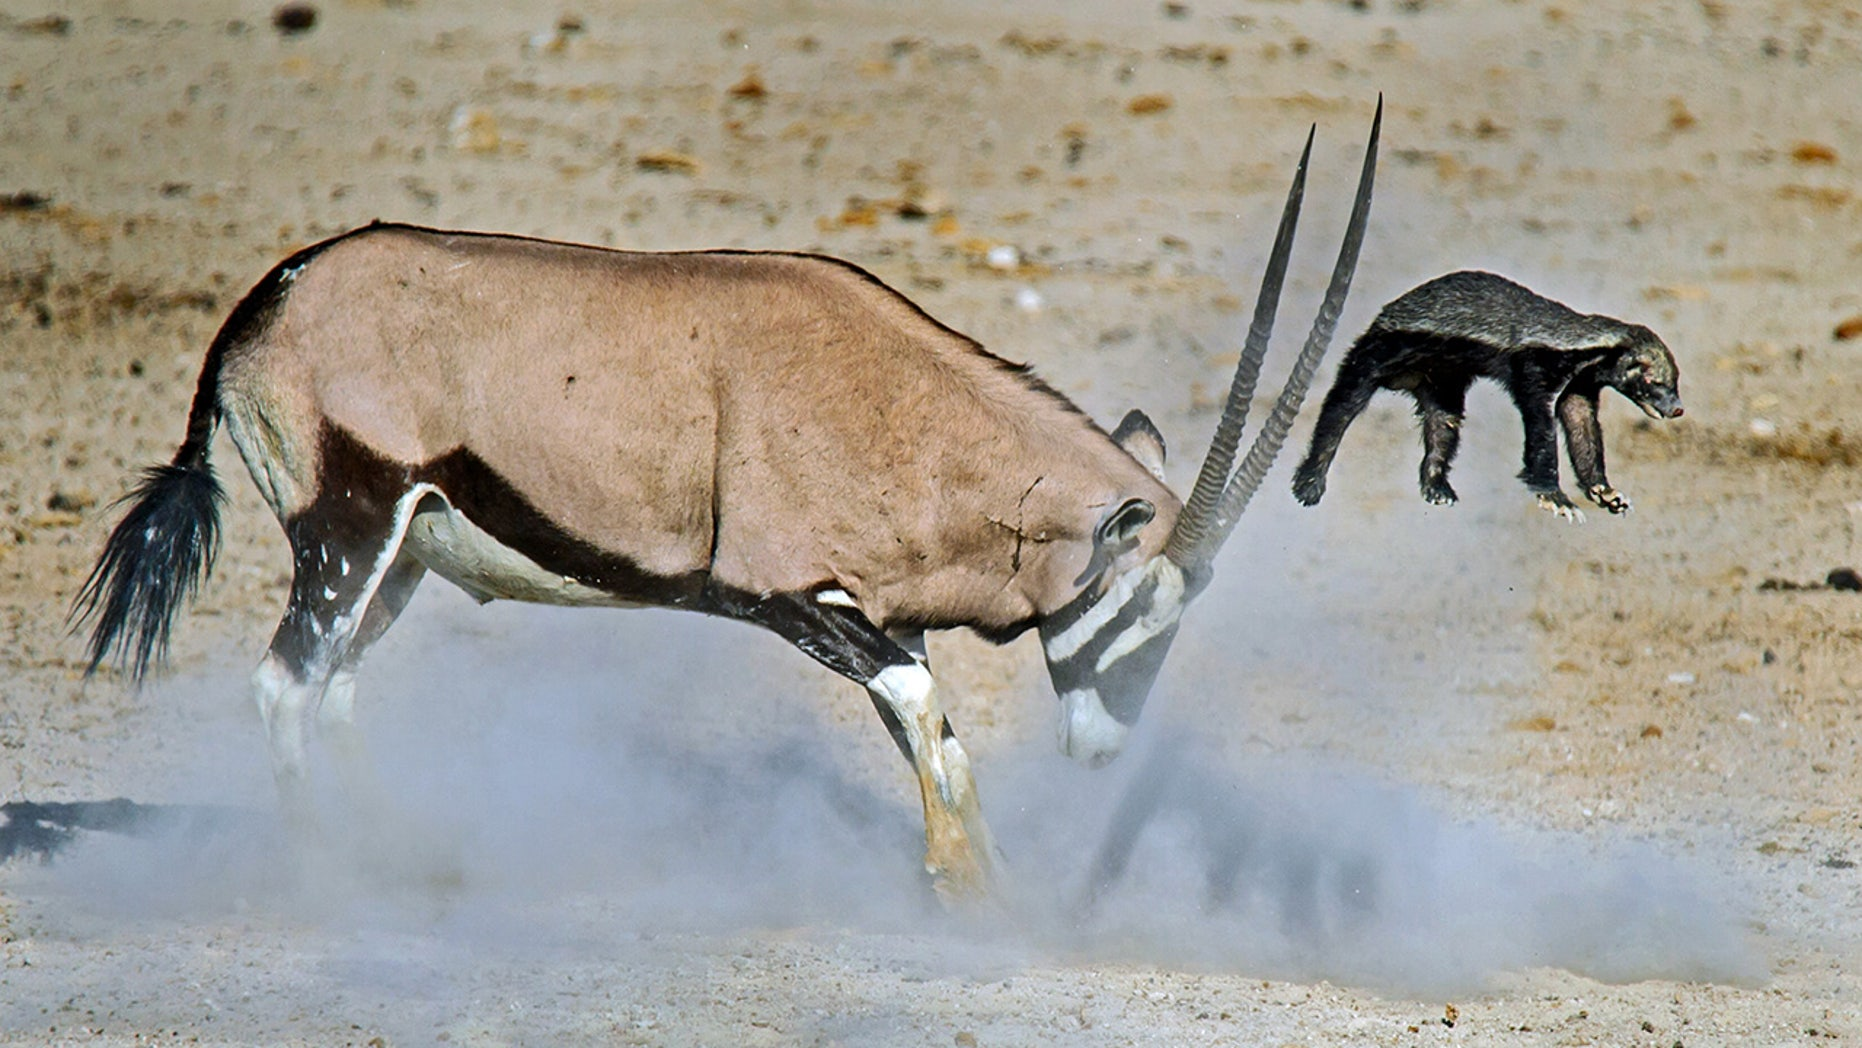 The photographer said the honey badger wouldn't give up the fight until the oryx decided 'enough is enough.'